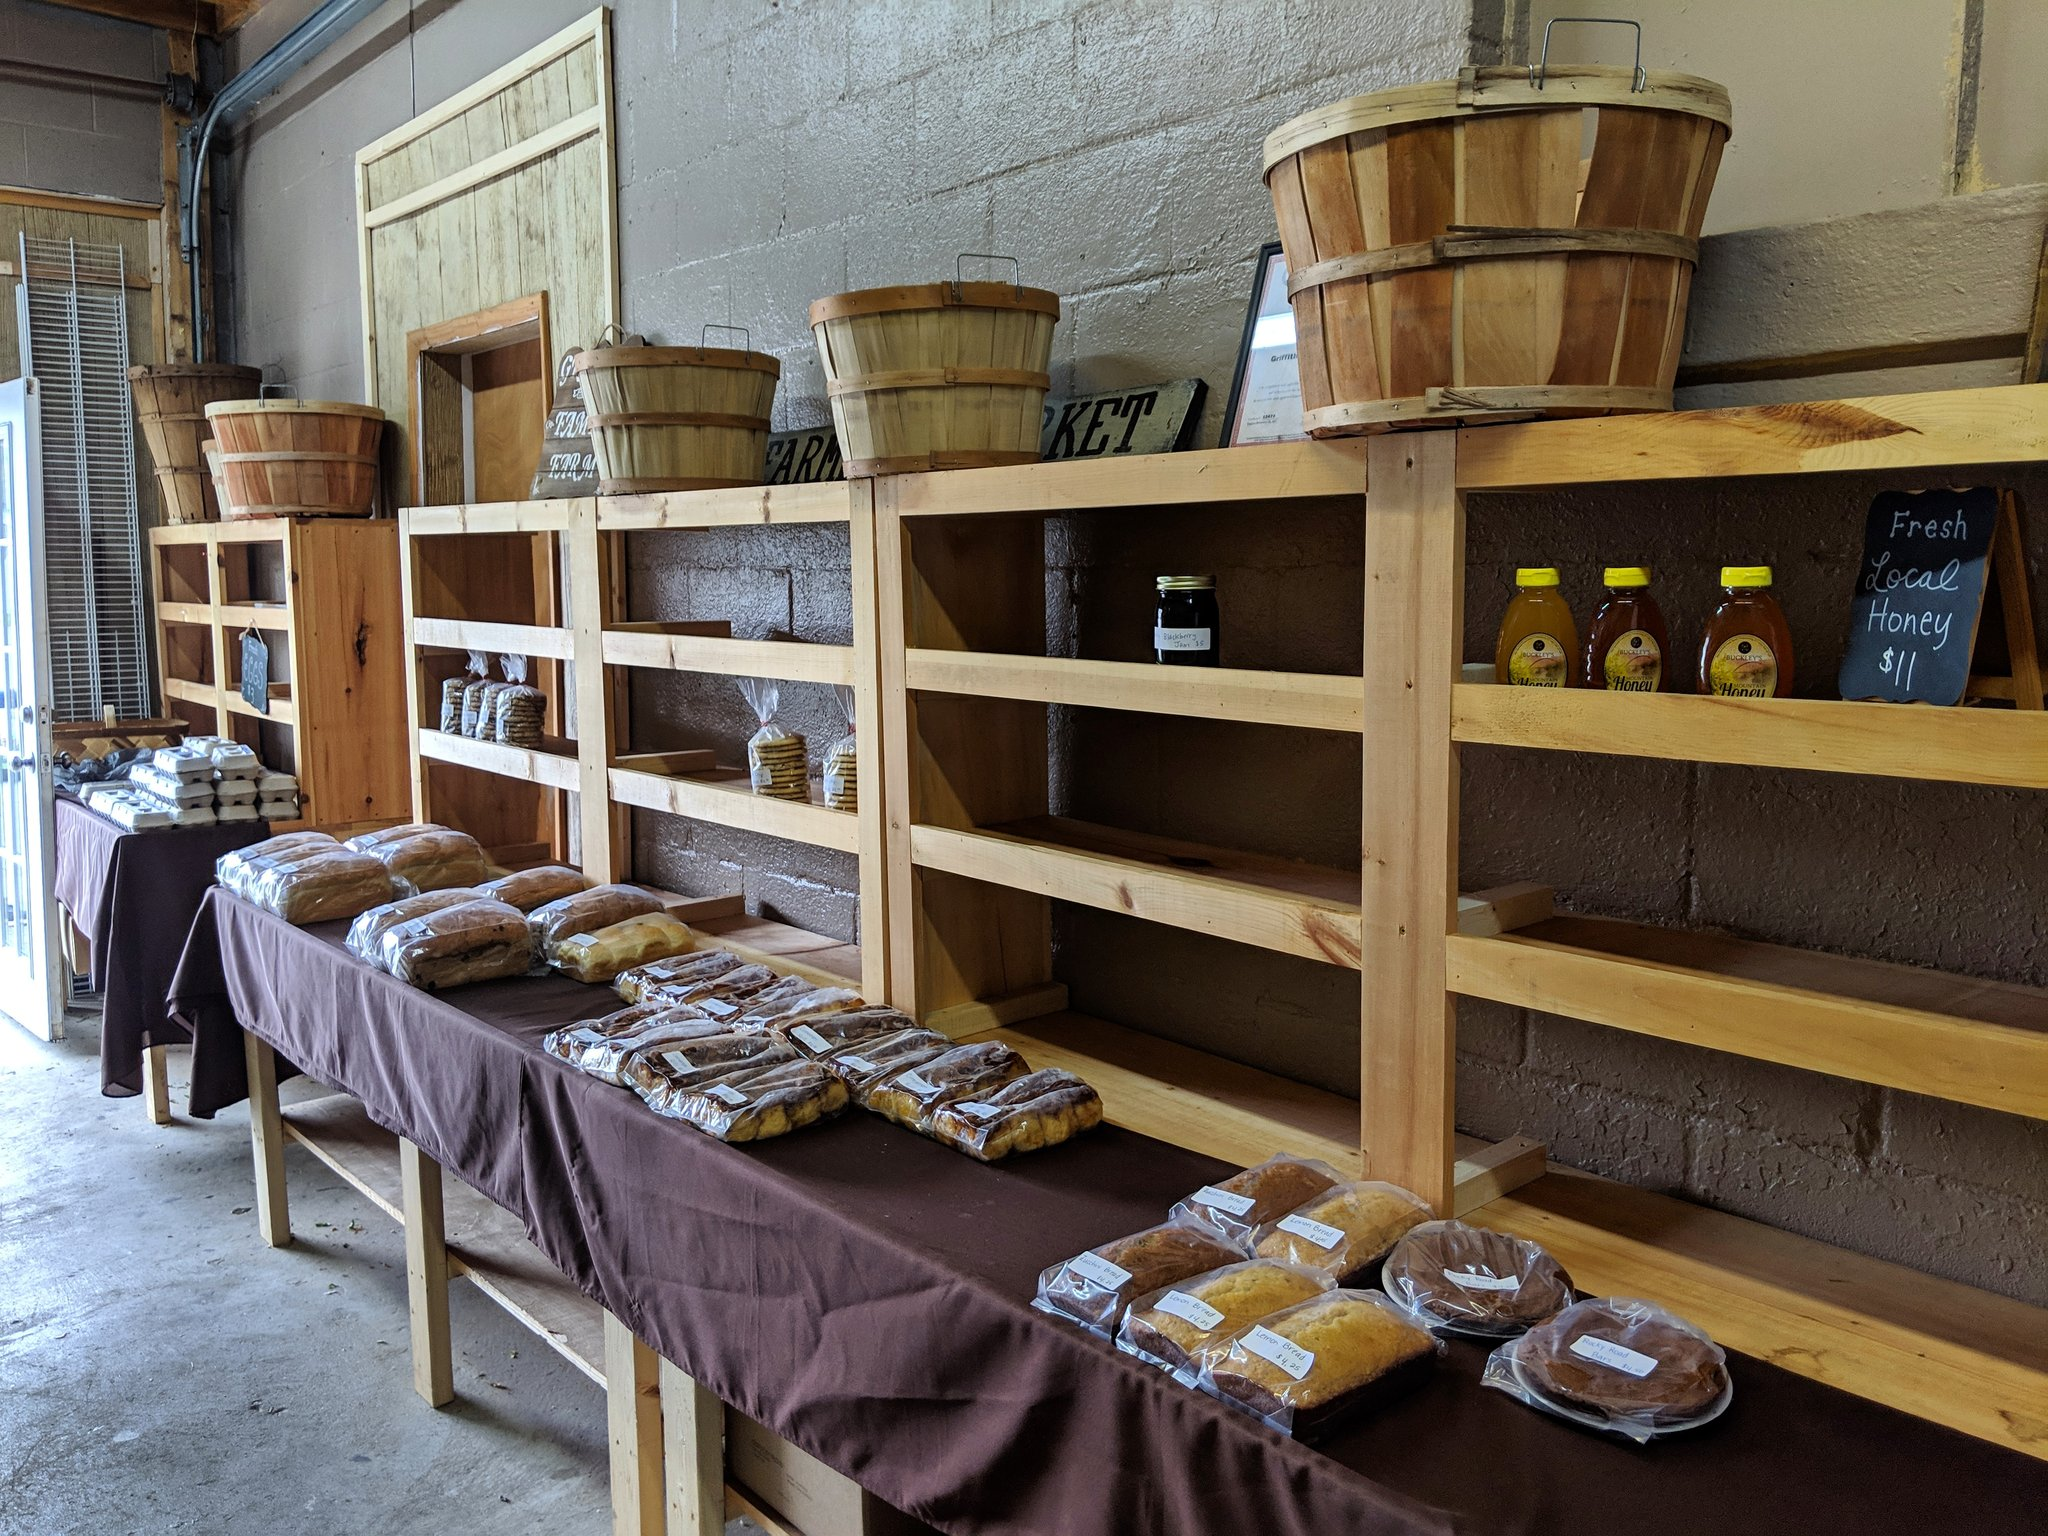 The Griffith Family Farm stall featuring tables and shelves with local honey, baked goods like bread and cinnamon rolls, and cartons of one dozen eggs.